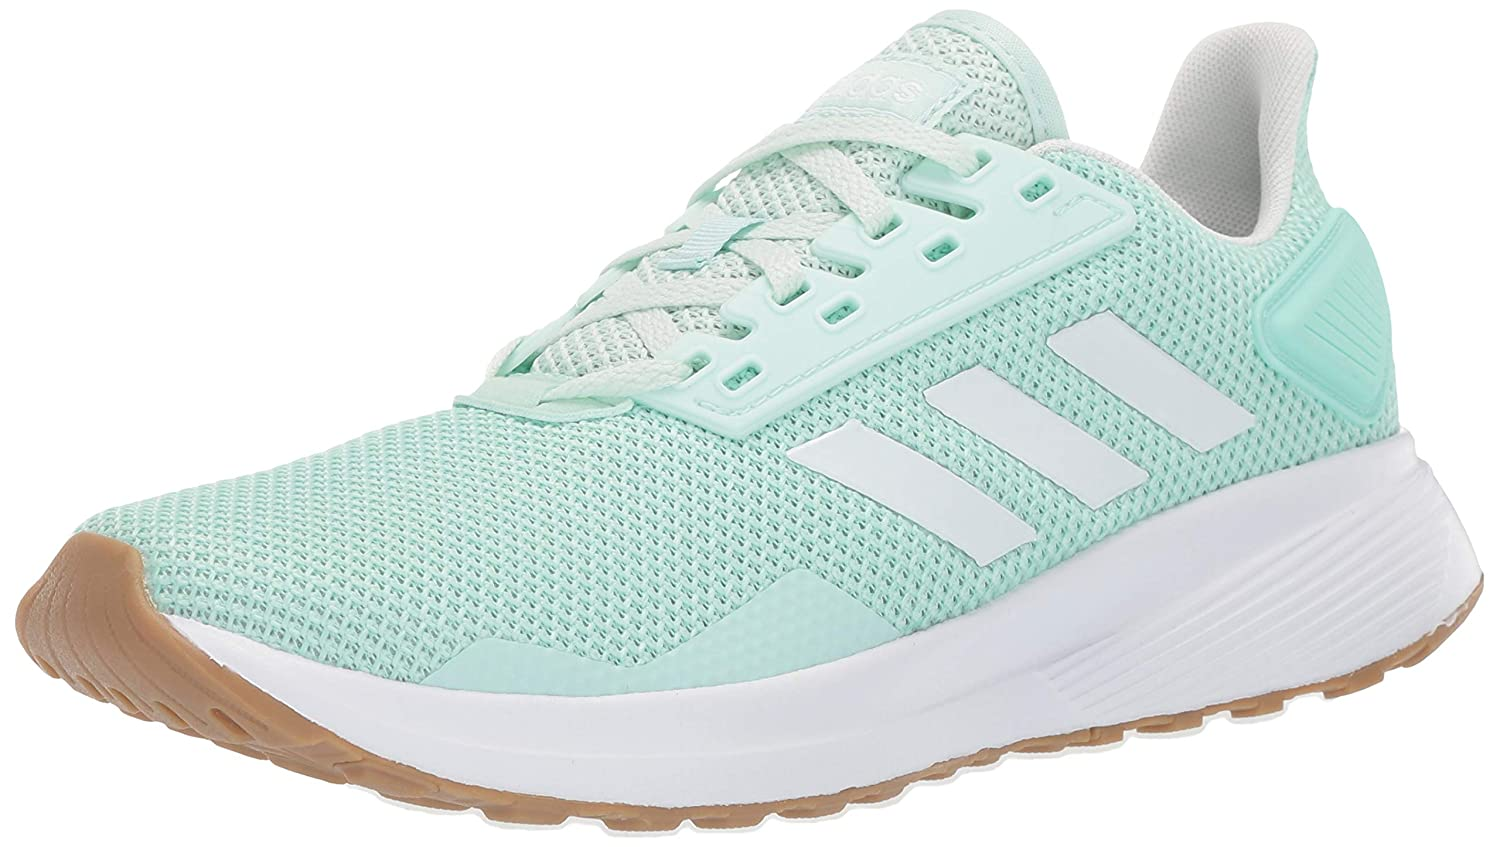 eef9a186d13 Amazon.com | adidas Duramo 9 Shoes Women's | Road Running